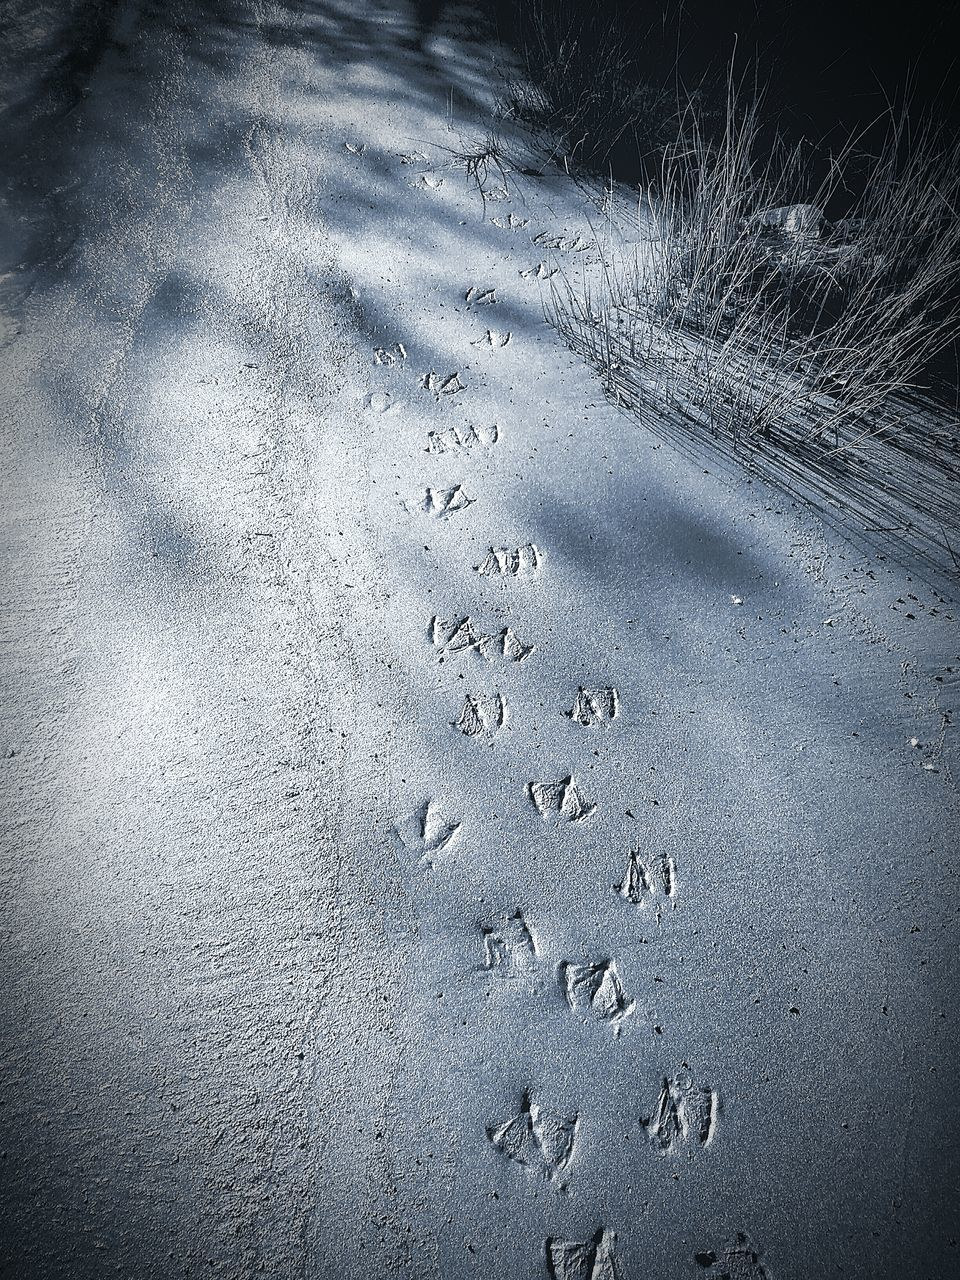 footprint, winter, paw print, no people, cold temperature, day, track - imprint, sand, snow, nature, outdoors, close-up